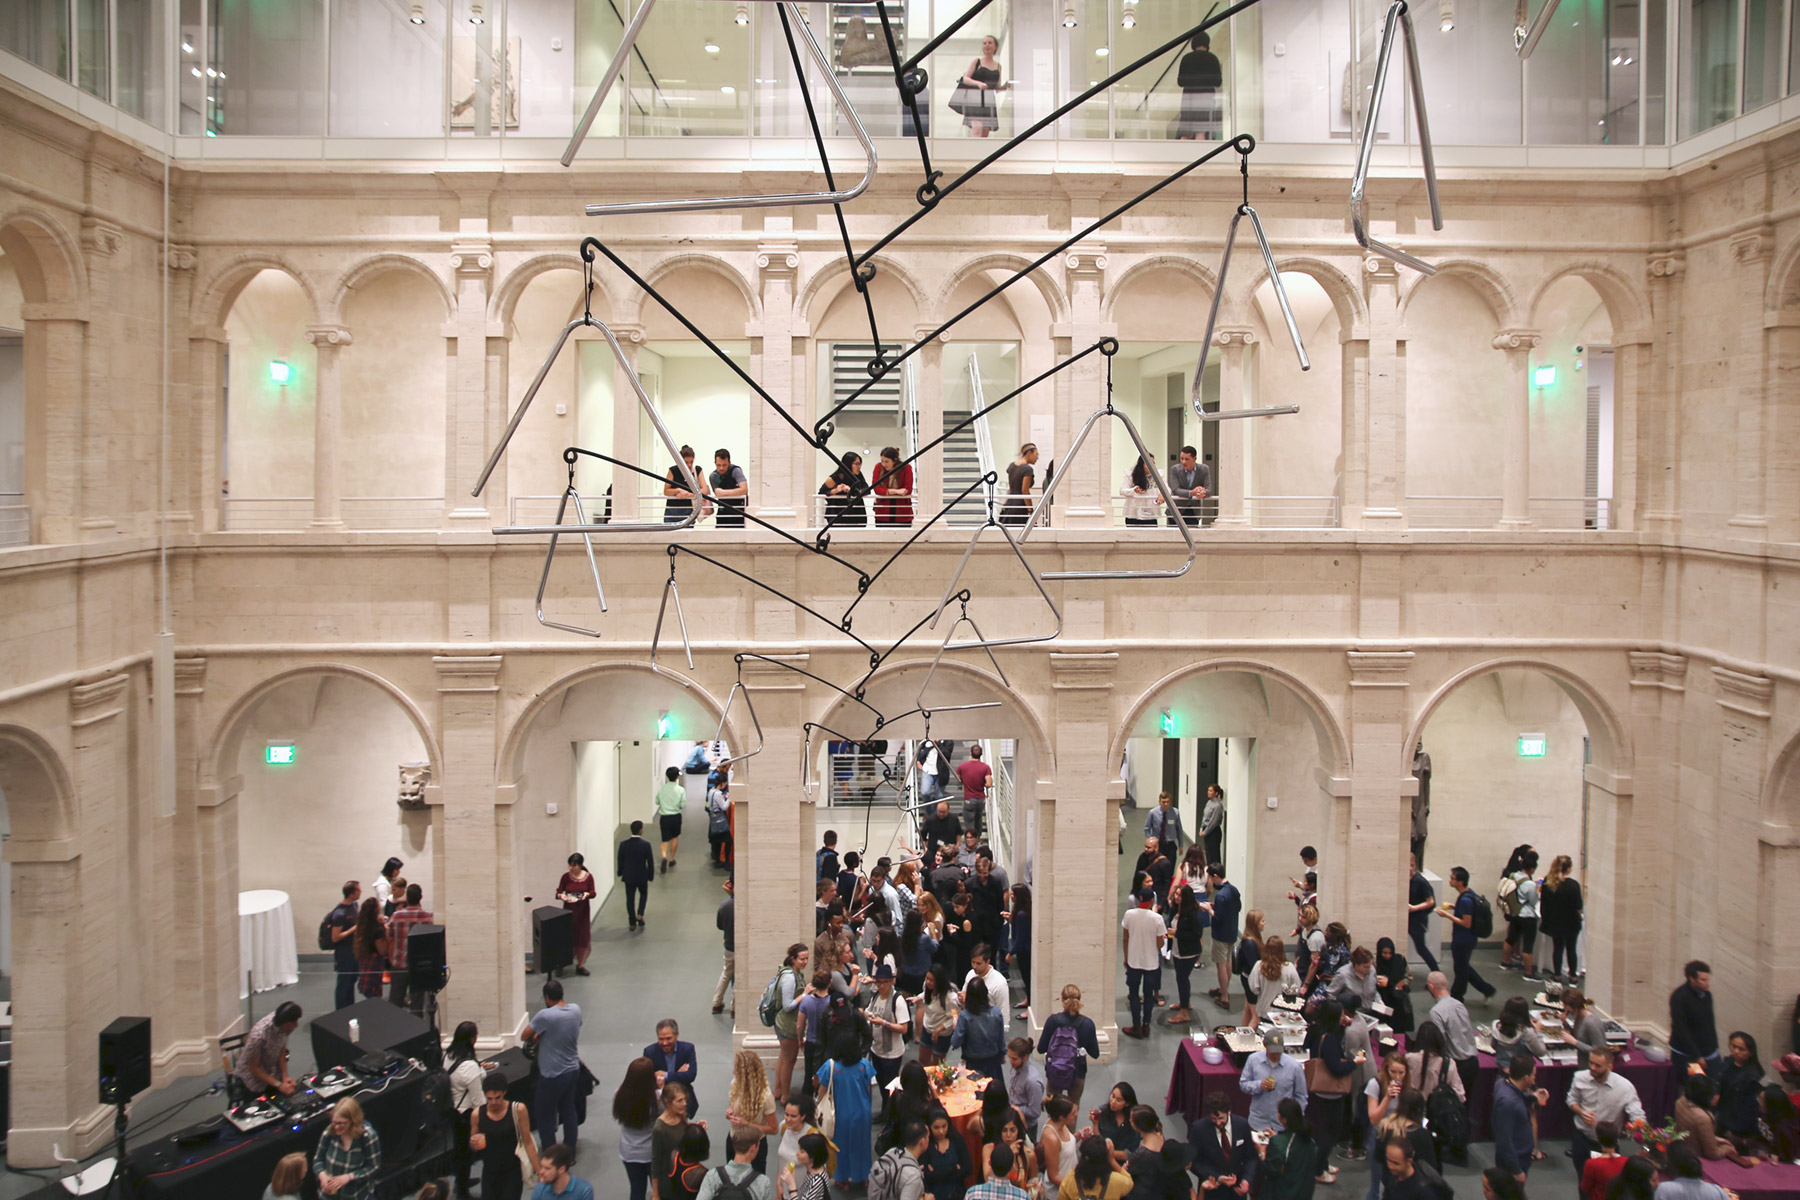 A picture of students mingling beneath a large hanging sculpture composed of instrumental triangles